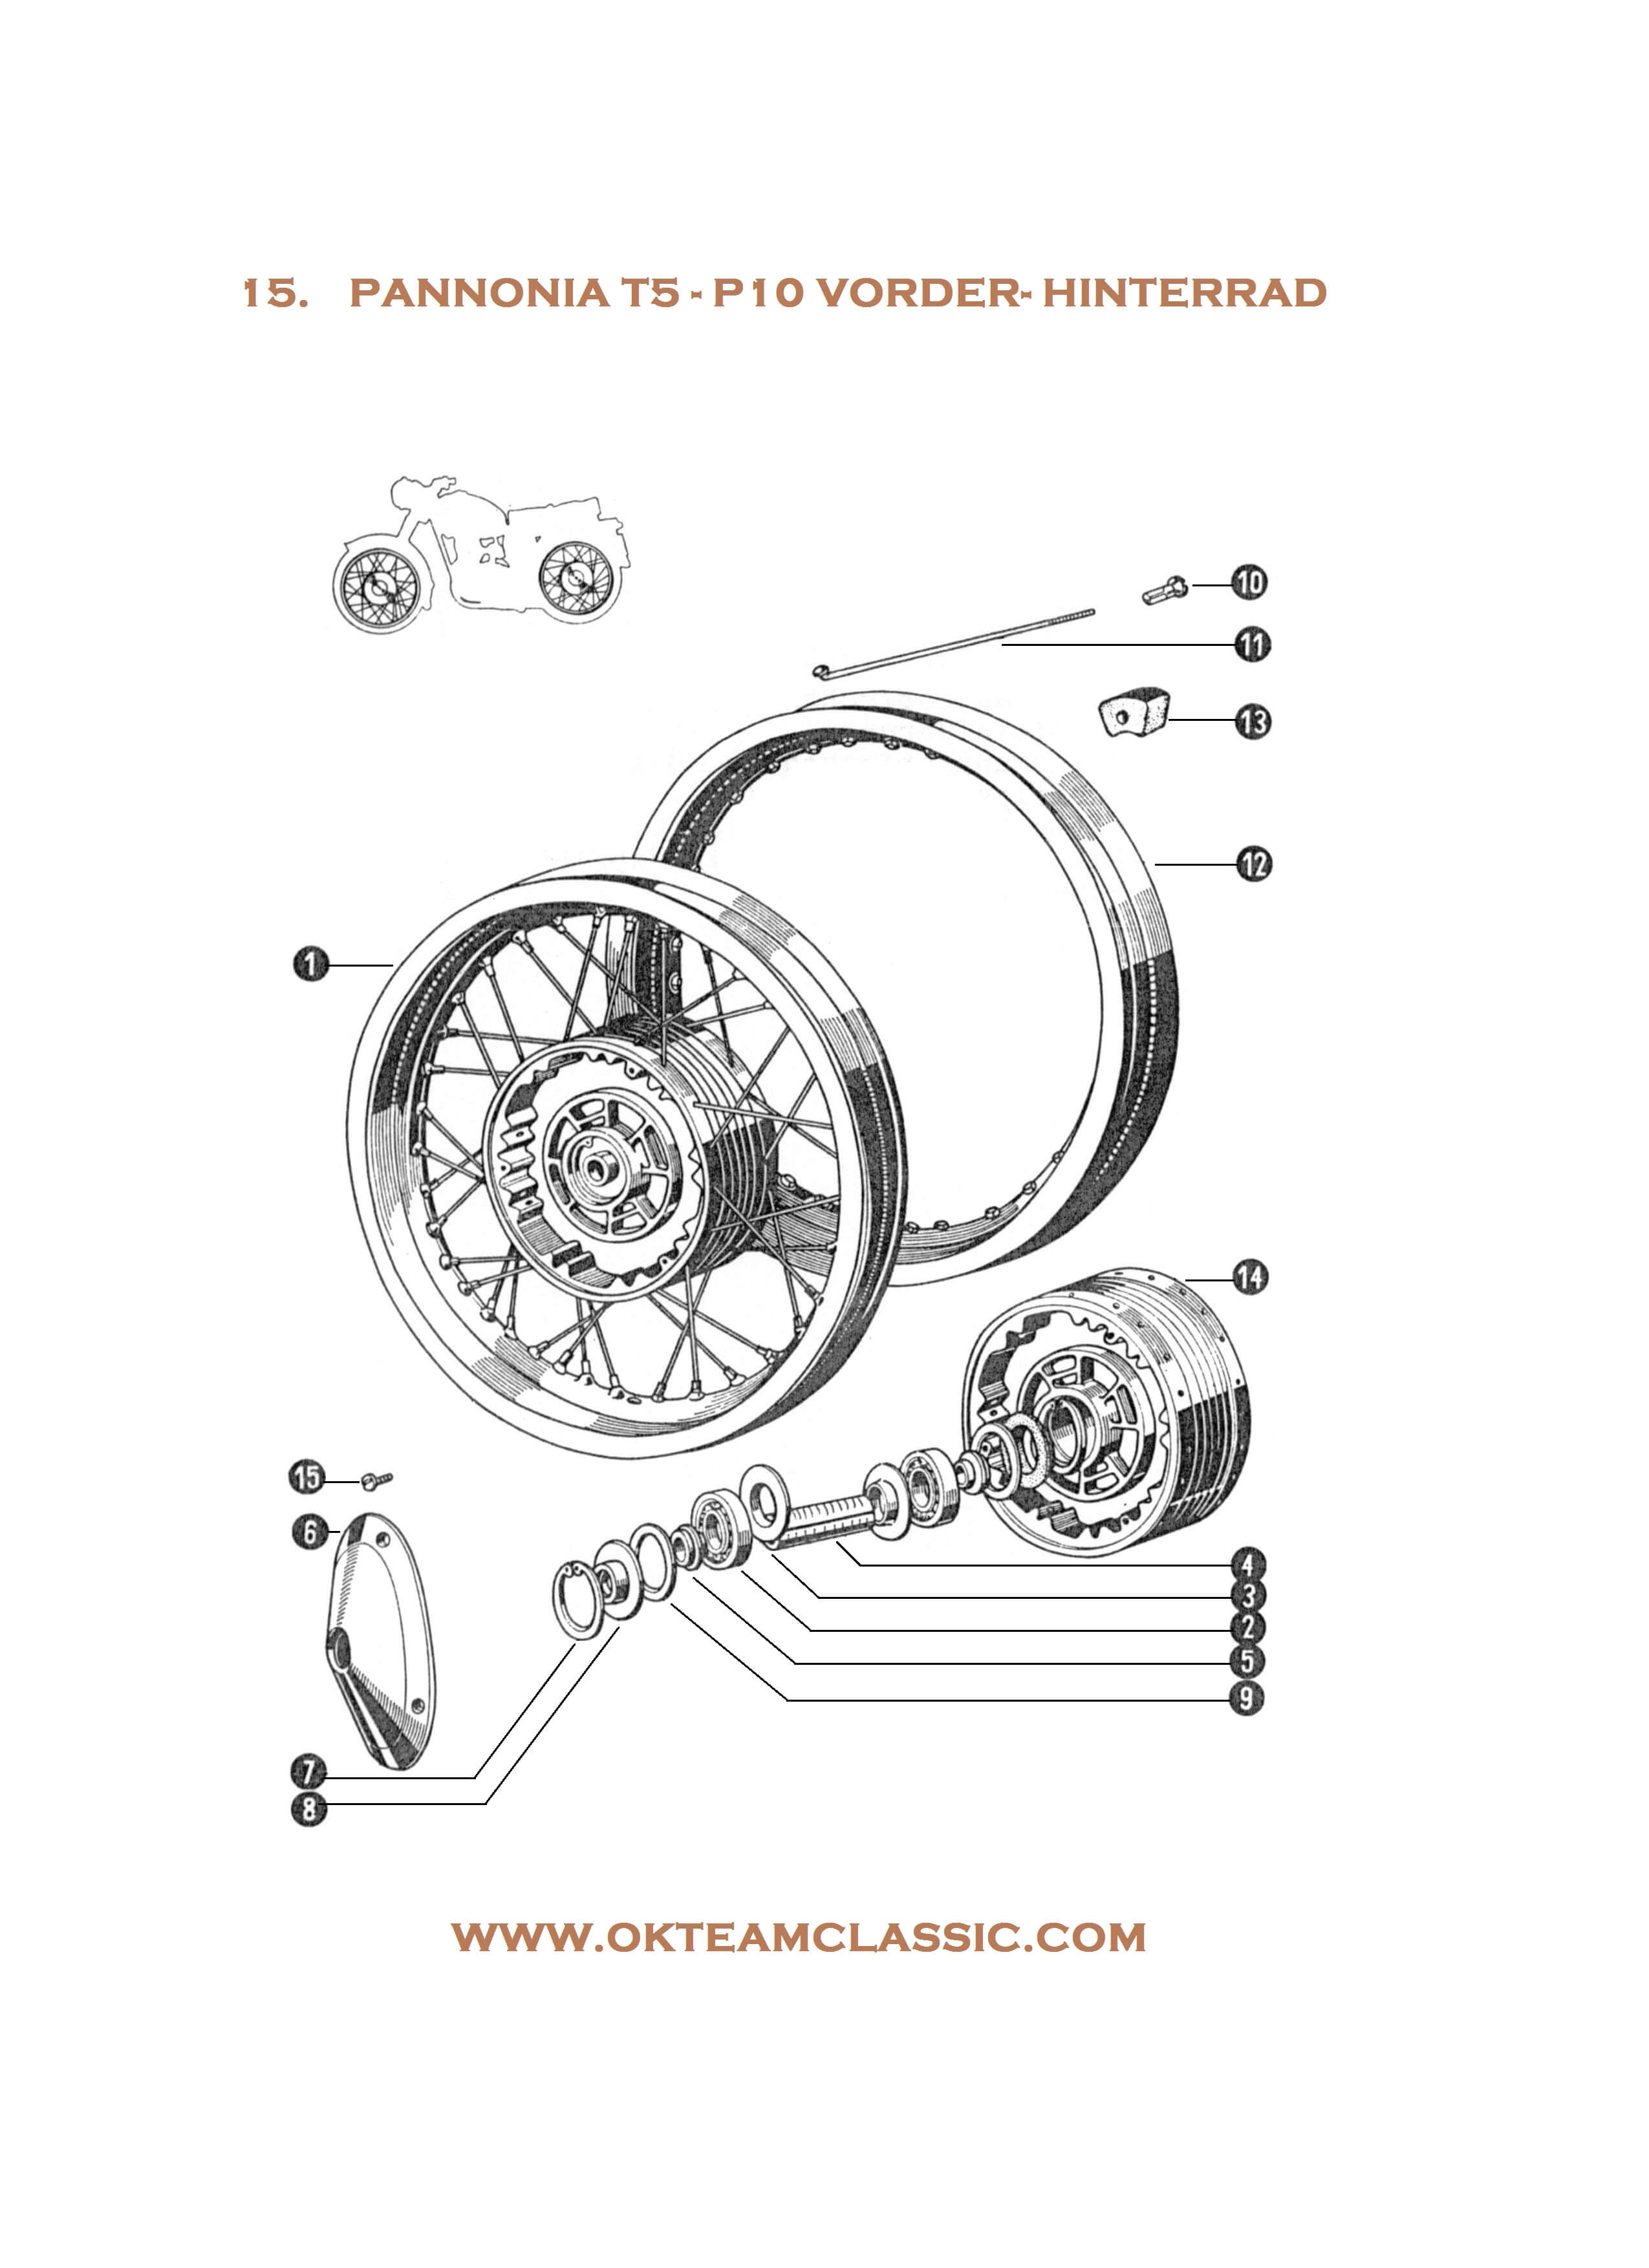 15. Front and rear wheel